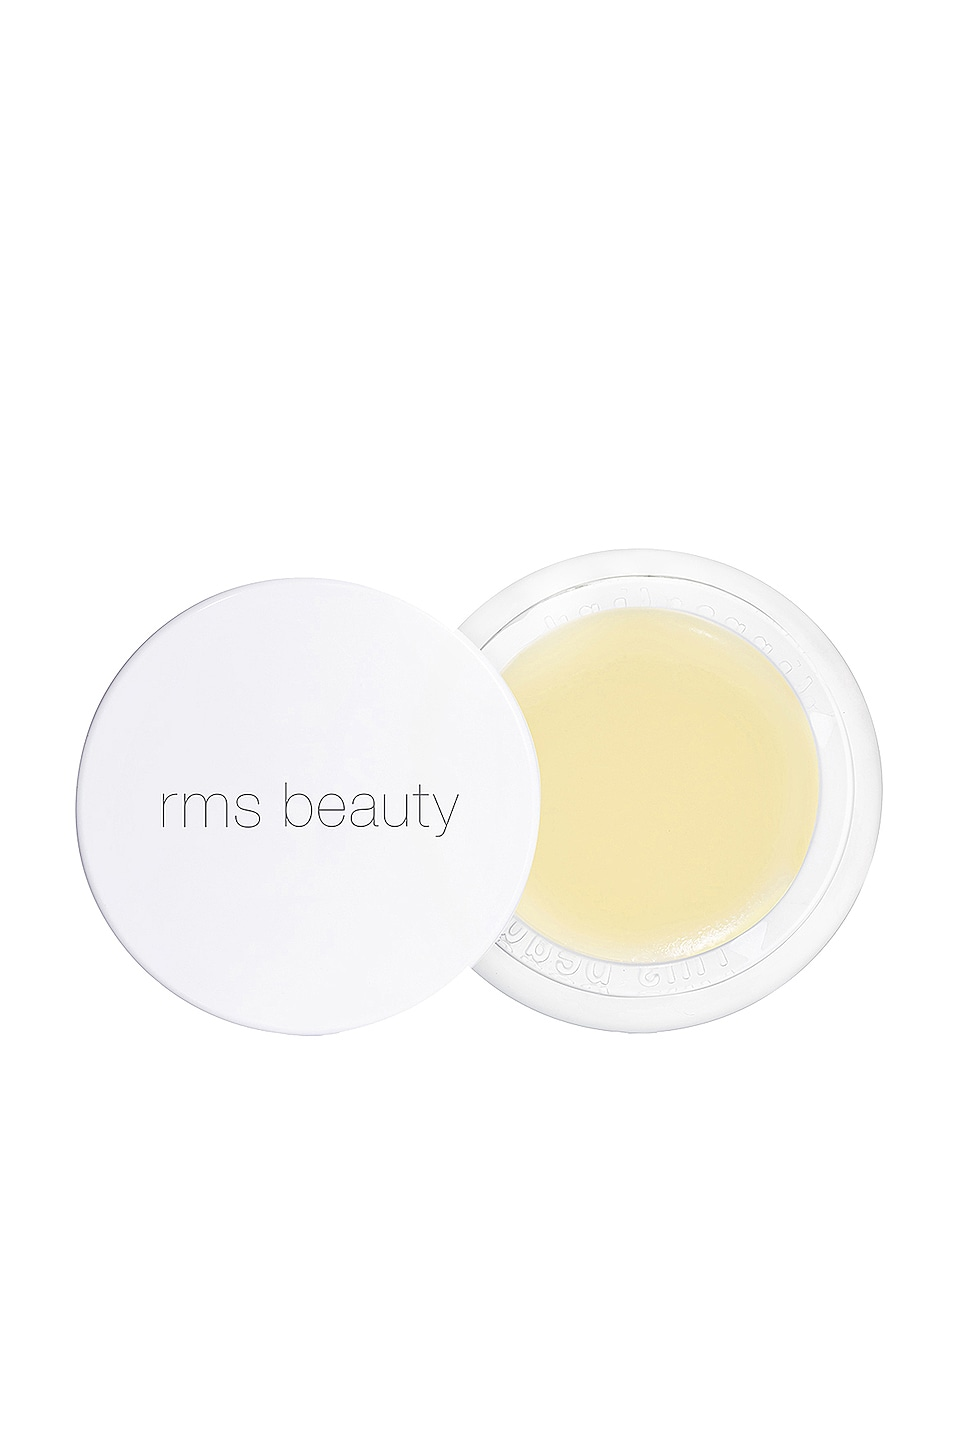 RMS Beauty Lip & Skin Balm in Simply Cocoa